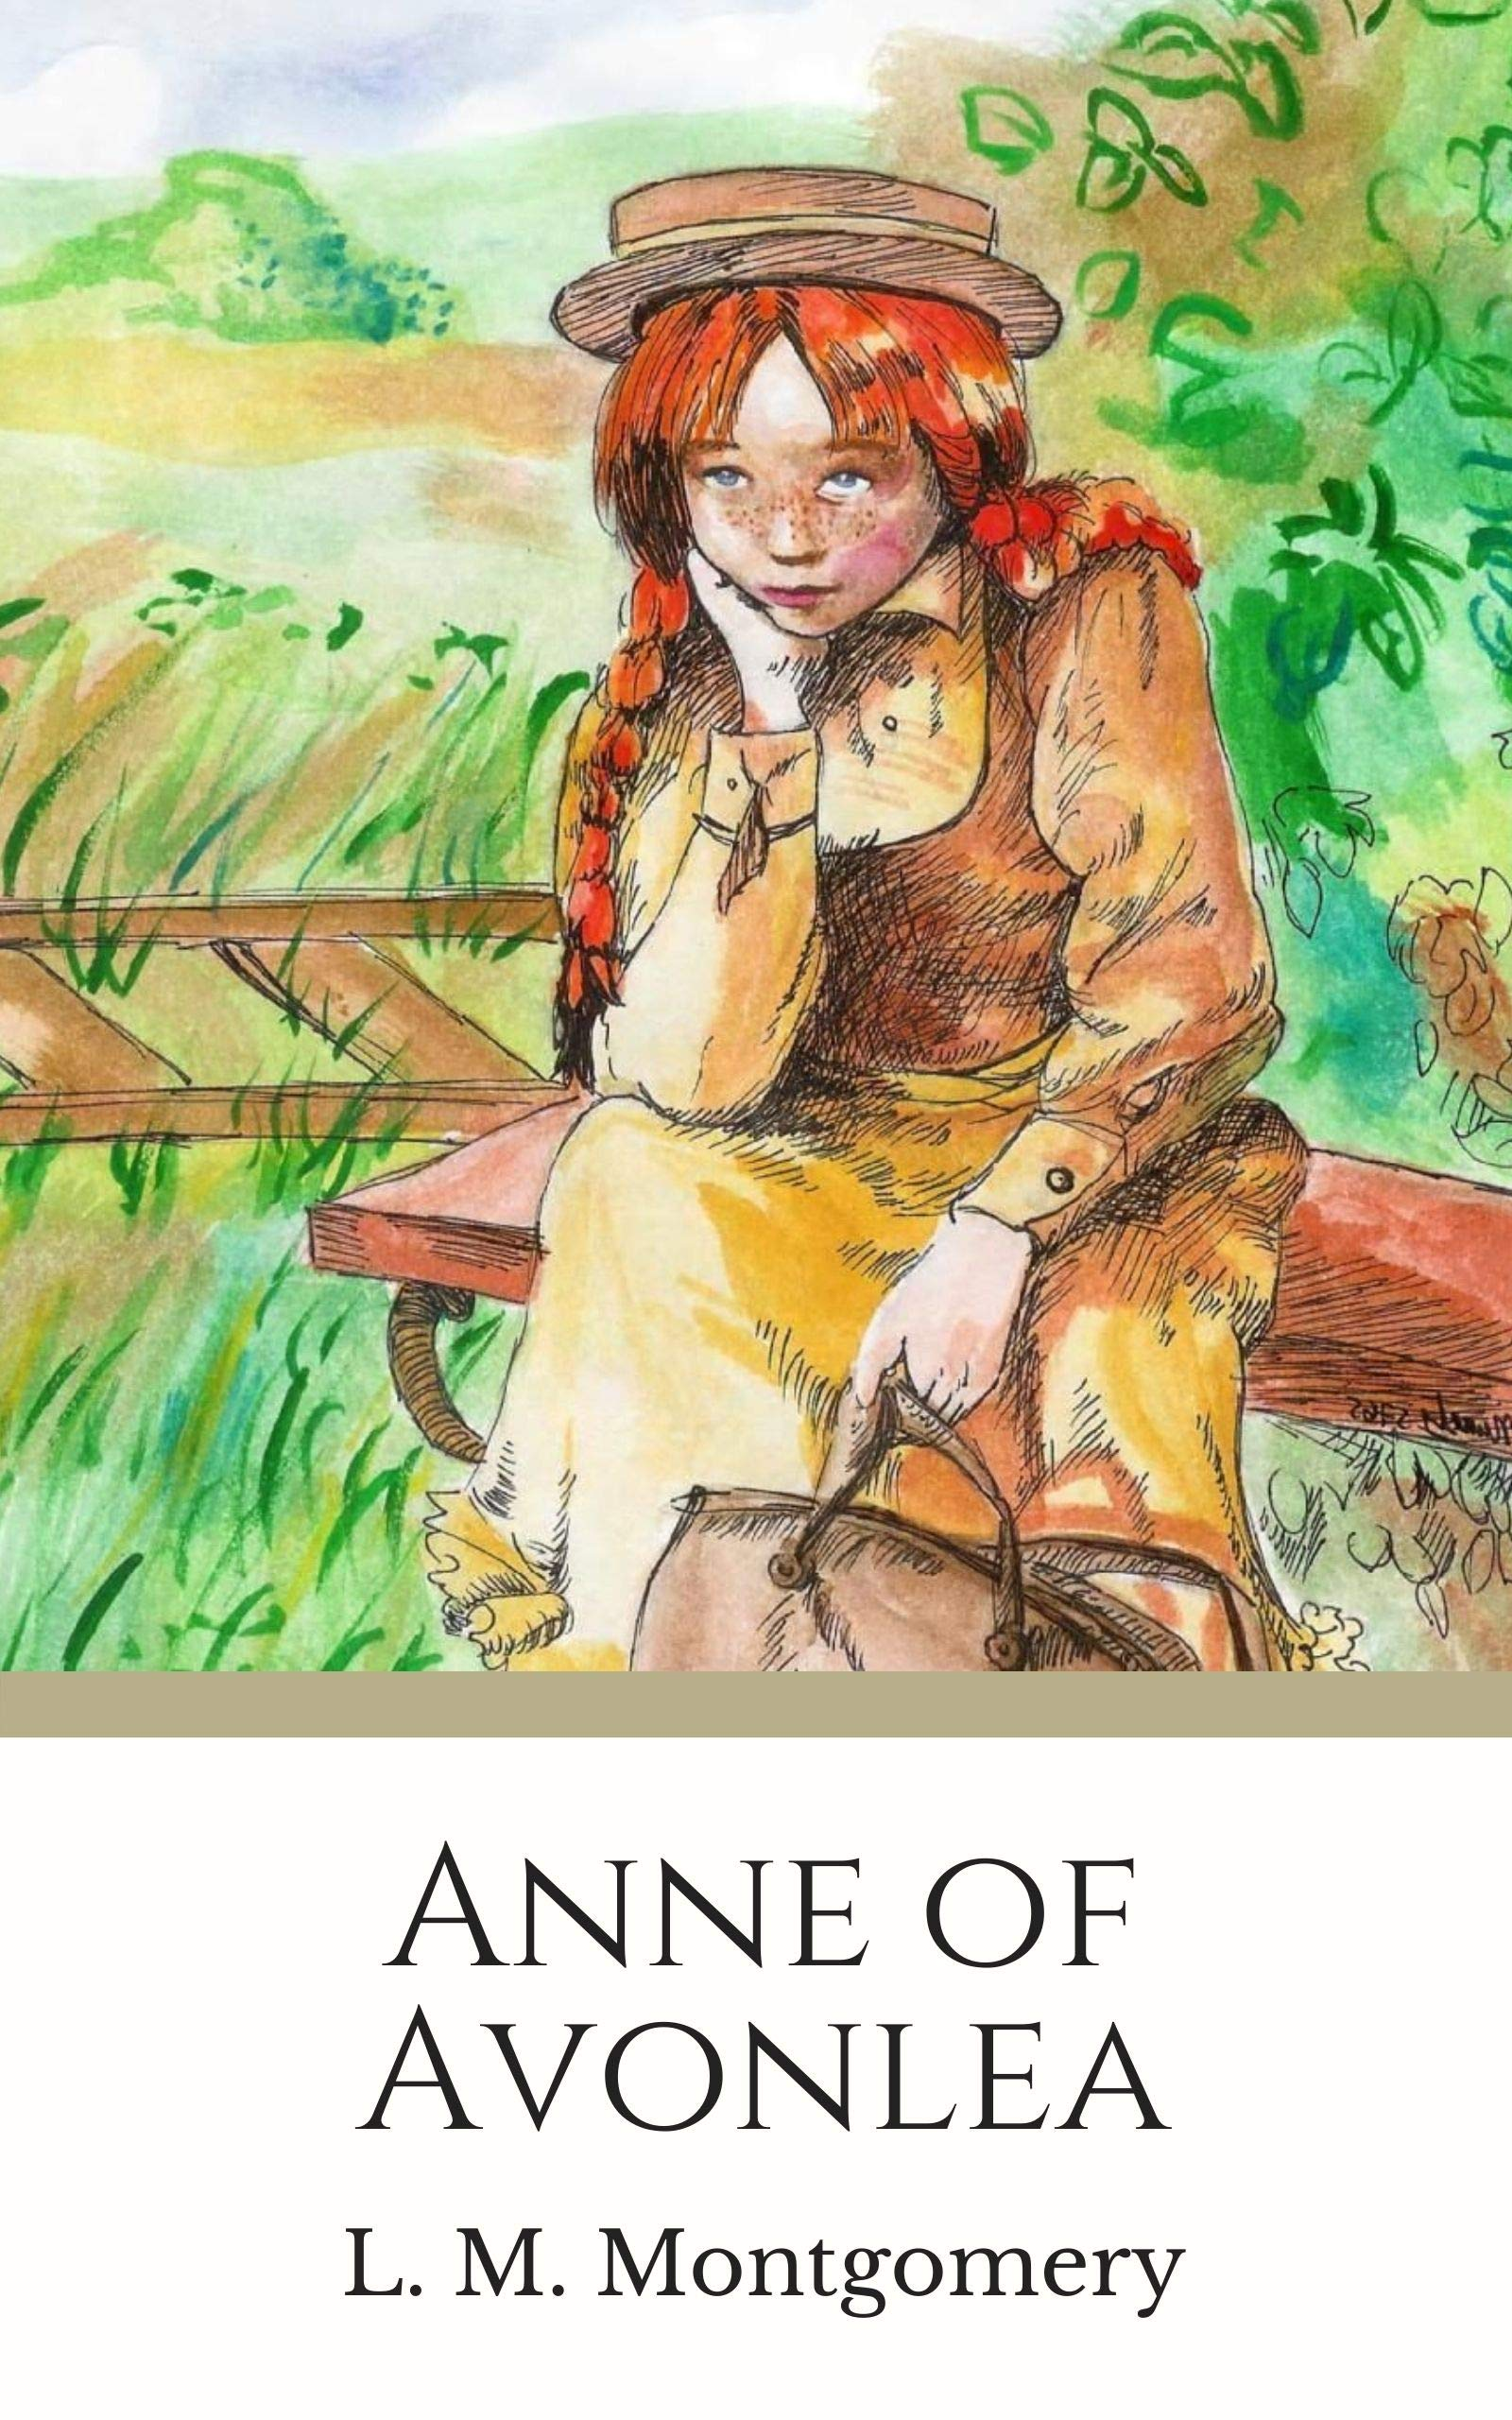 Anne of Avonlea: By Lucy Maud Montgomery (Classic Books)